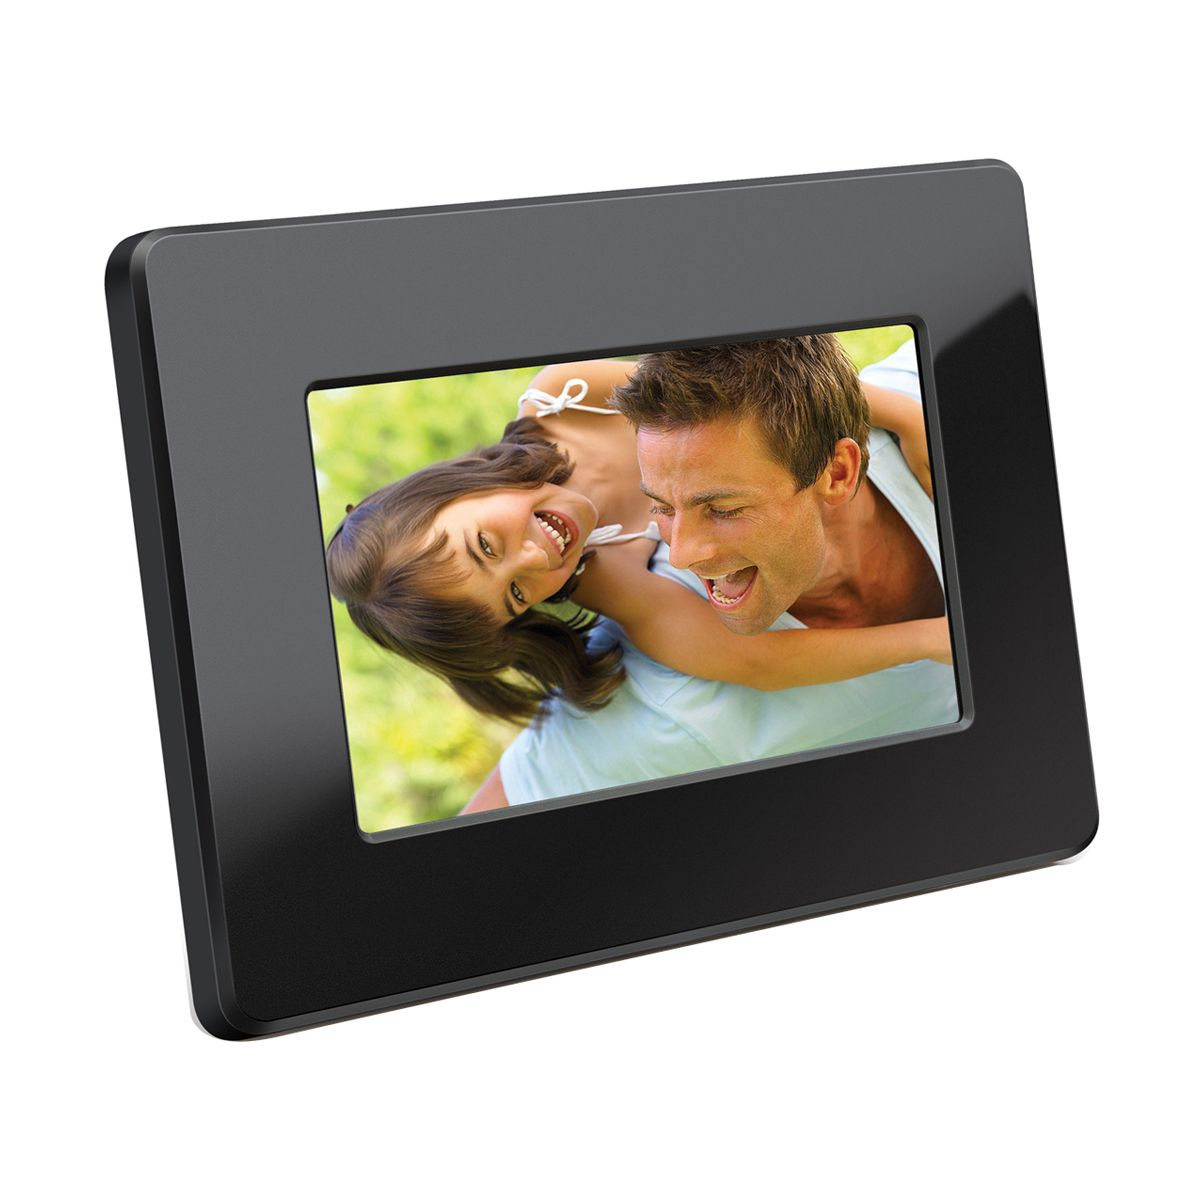 Kmart Digital Photo Frame Merkury Innovations 8 5 In Tft Lcd Digital Photo Frame